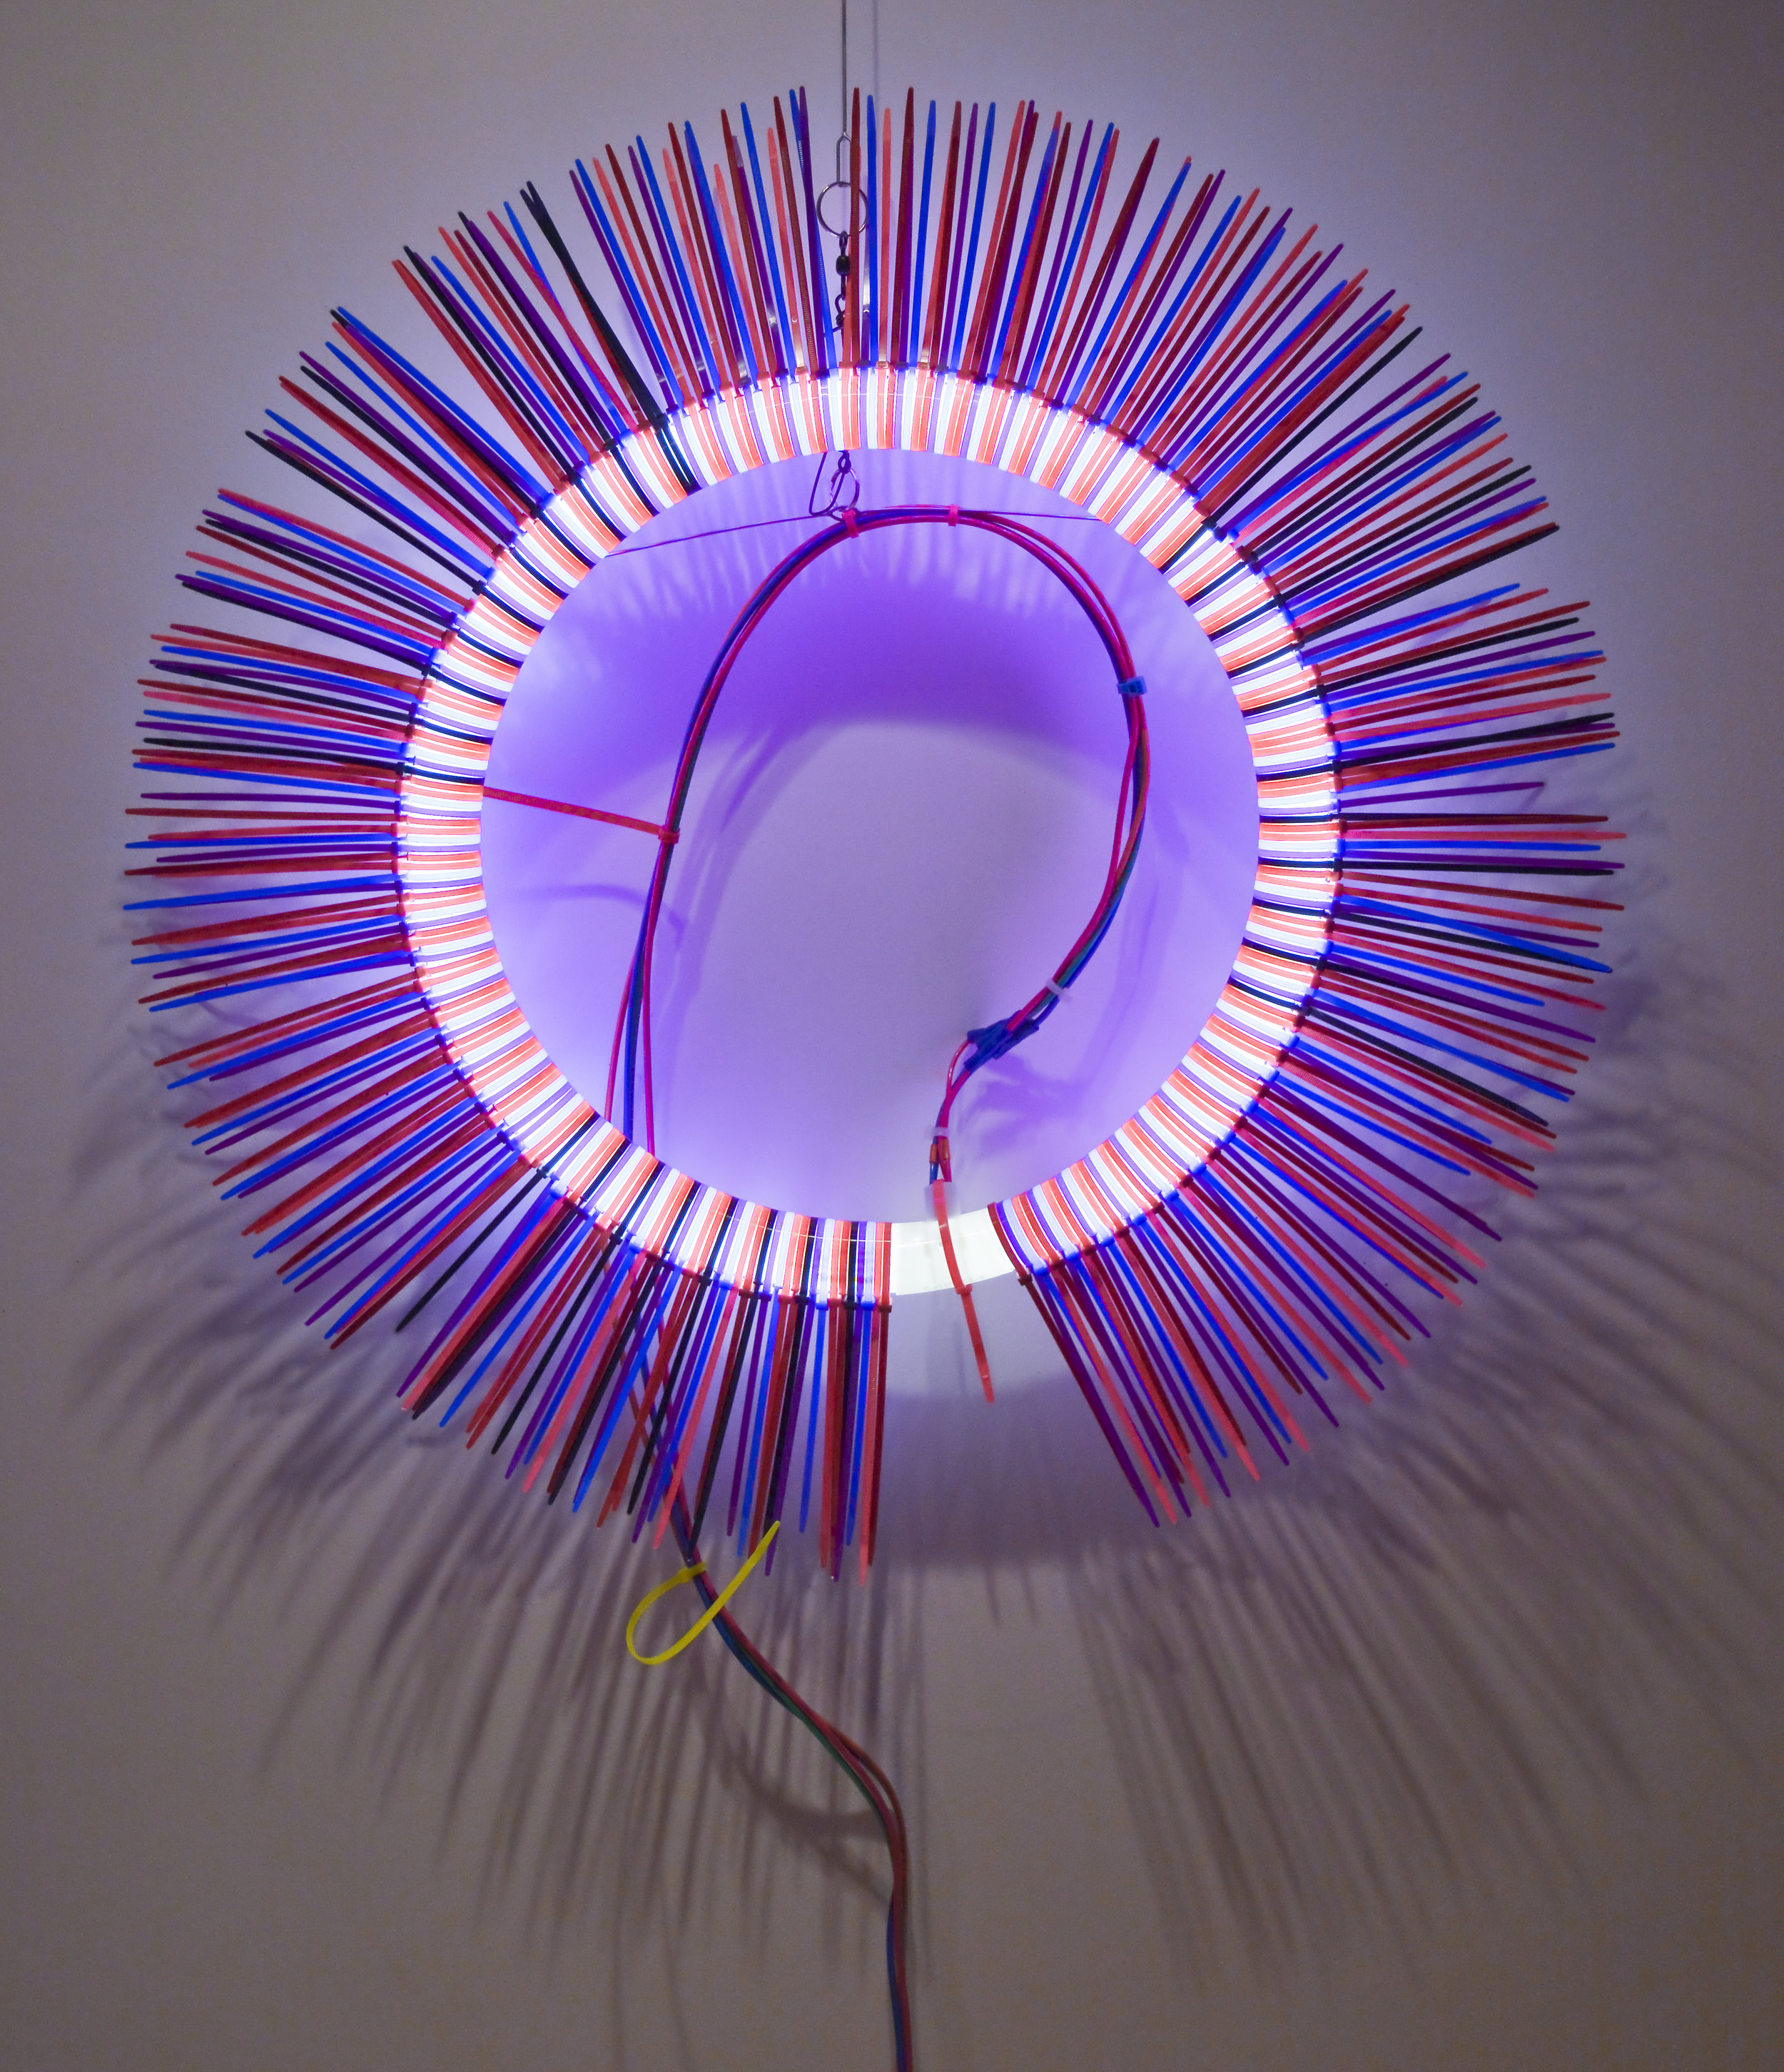 For Someone   Fluorescent Lamp, color snap ties, loom heddles and fishing spinners and color wire 16 in lamp diameter 24 in overall